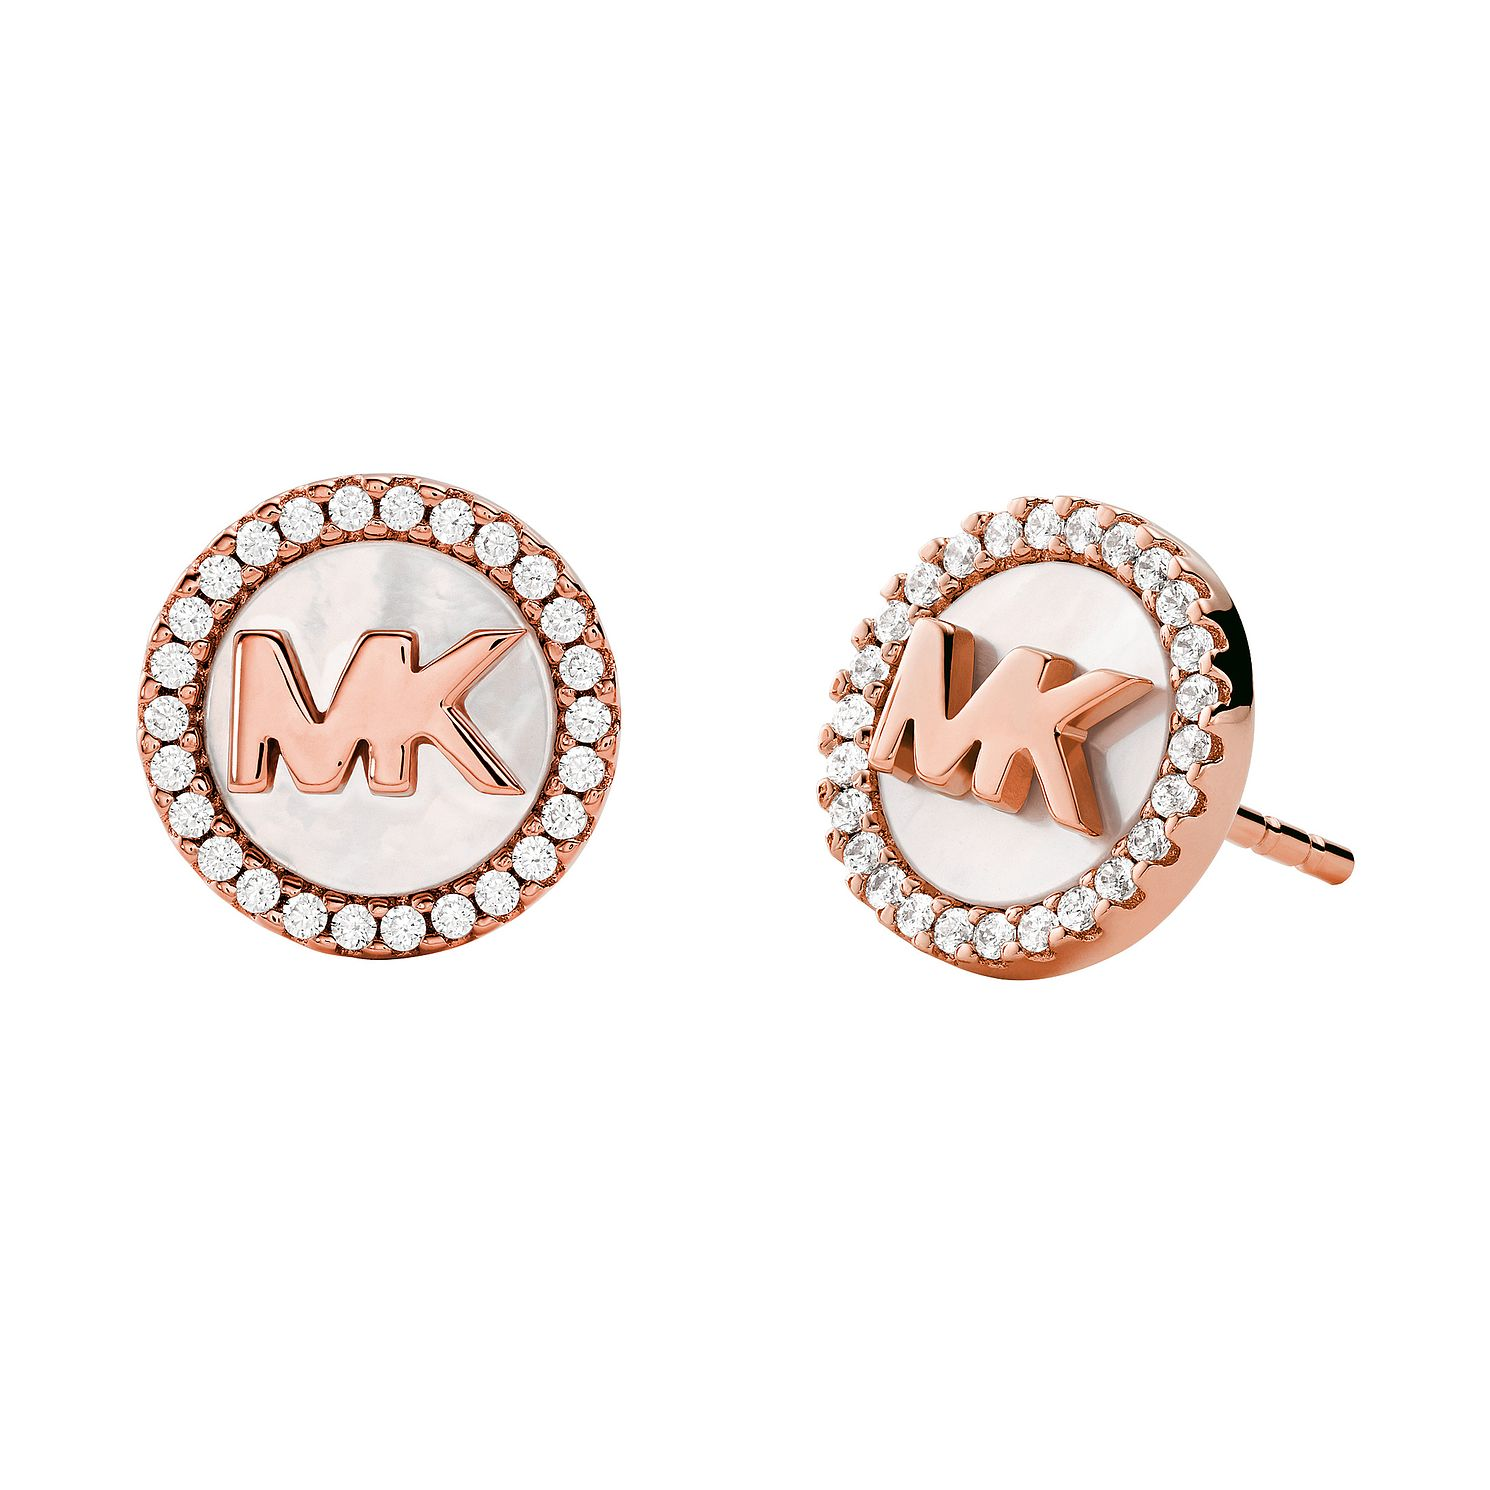 Michael Kors Rose Gold Tone Mother of Pearl Stud Earrings - Product number 4939840